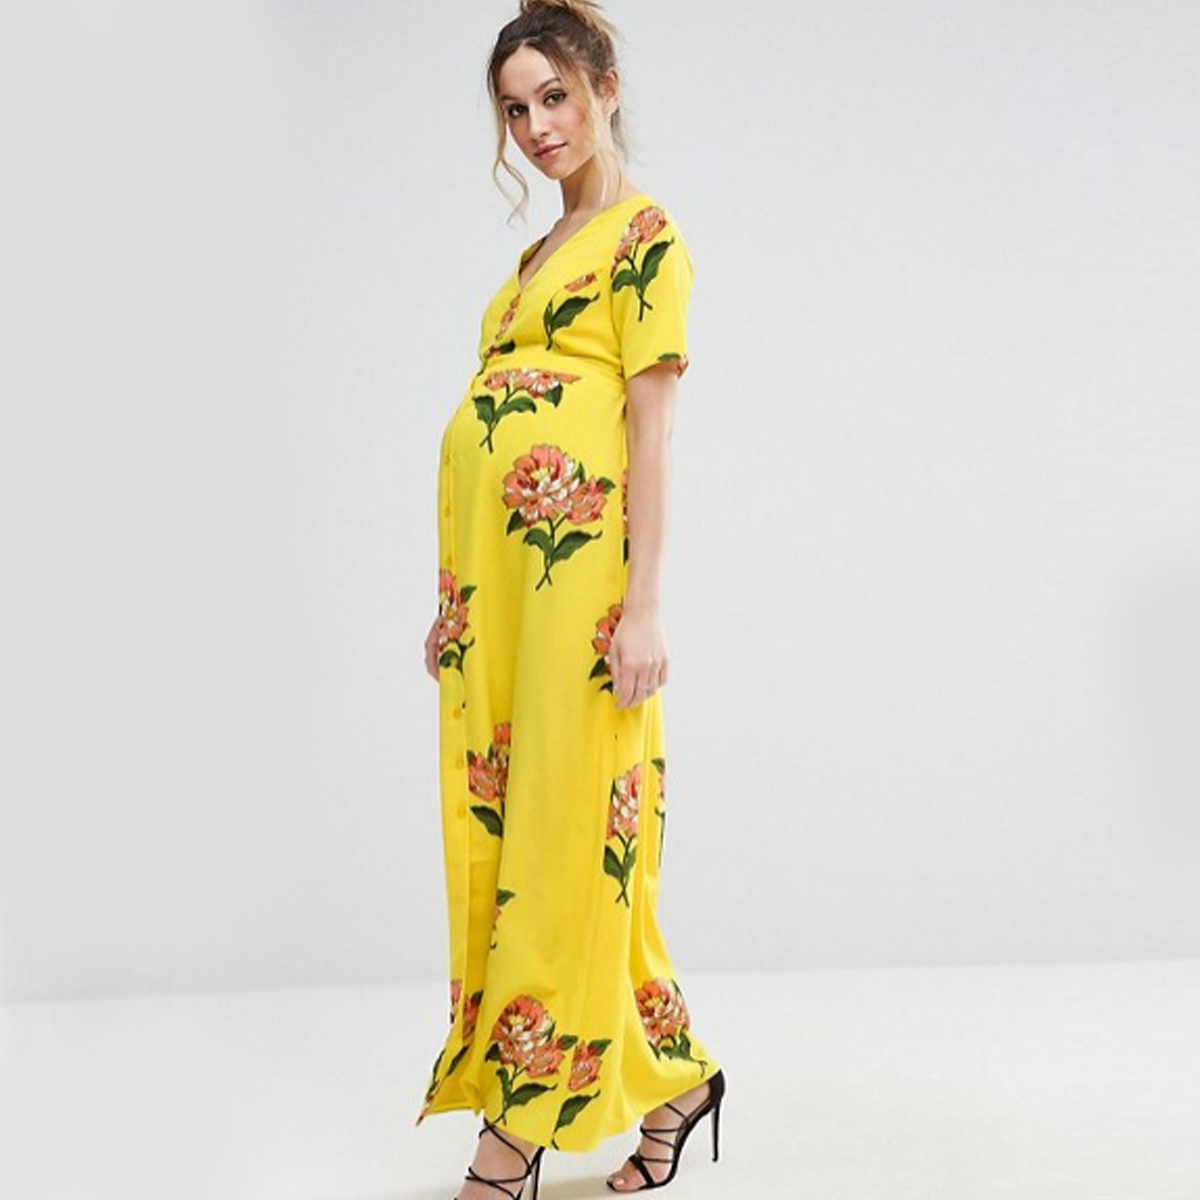 Maternity fashion fit pregnancy and baby the 10 best summer maternity dresses under 75 ombrellifo Image collections